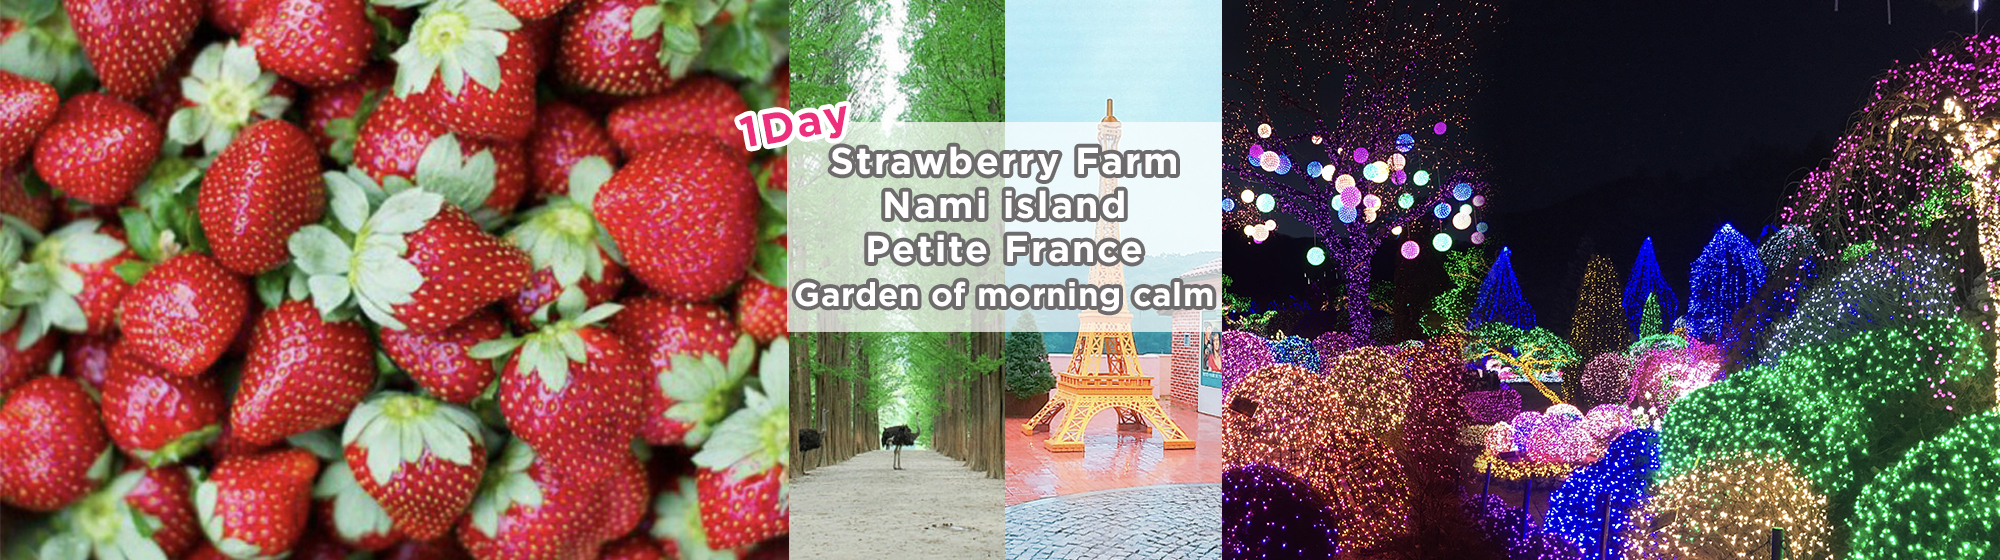 Nami Island, Petite France, Strawberry Farm Picking and Garden of Morning Calm 1-Day Tour Shuttle Package | KoreaTravelEasy